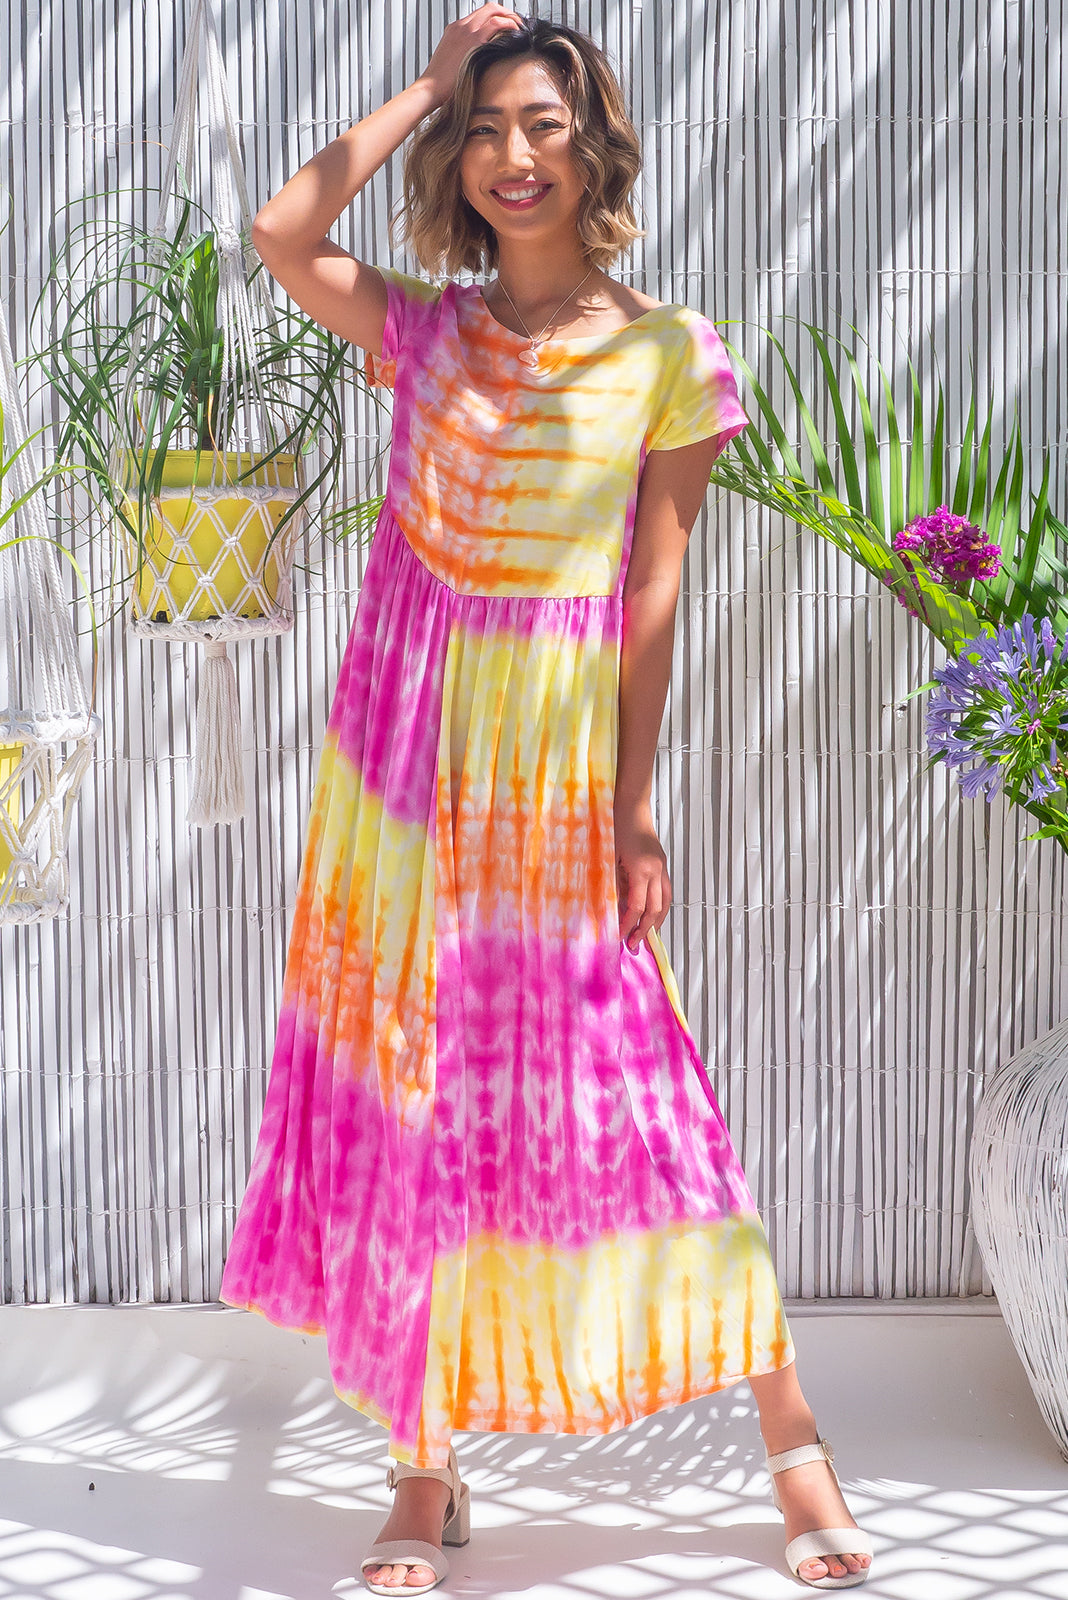 The Cocoloco Gelati Tie Dye Midi Dress is such a pretty tie day dress featuring relaxed fit, short sleeves, side pockets and 100% rayon in hot pink, yellow and orange tie dye print.